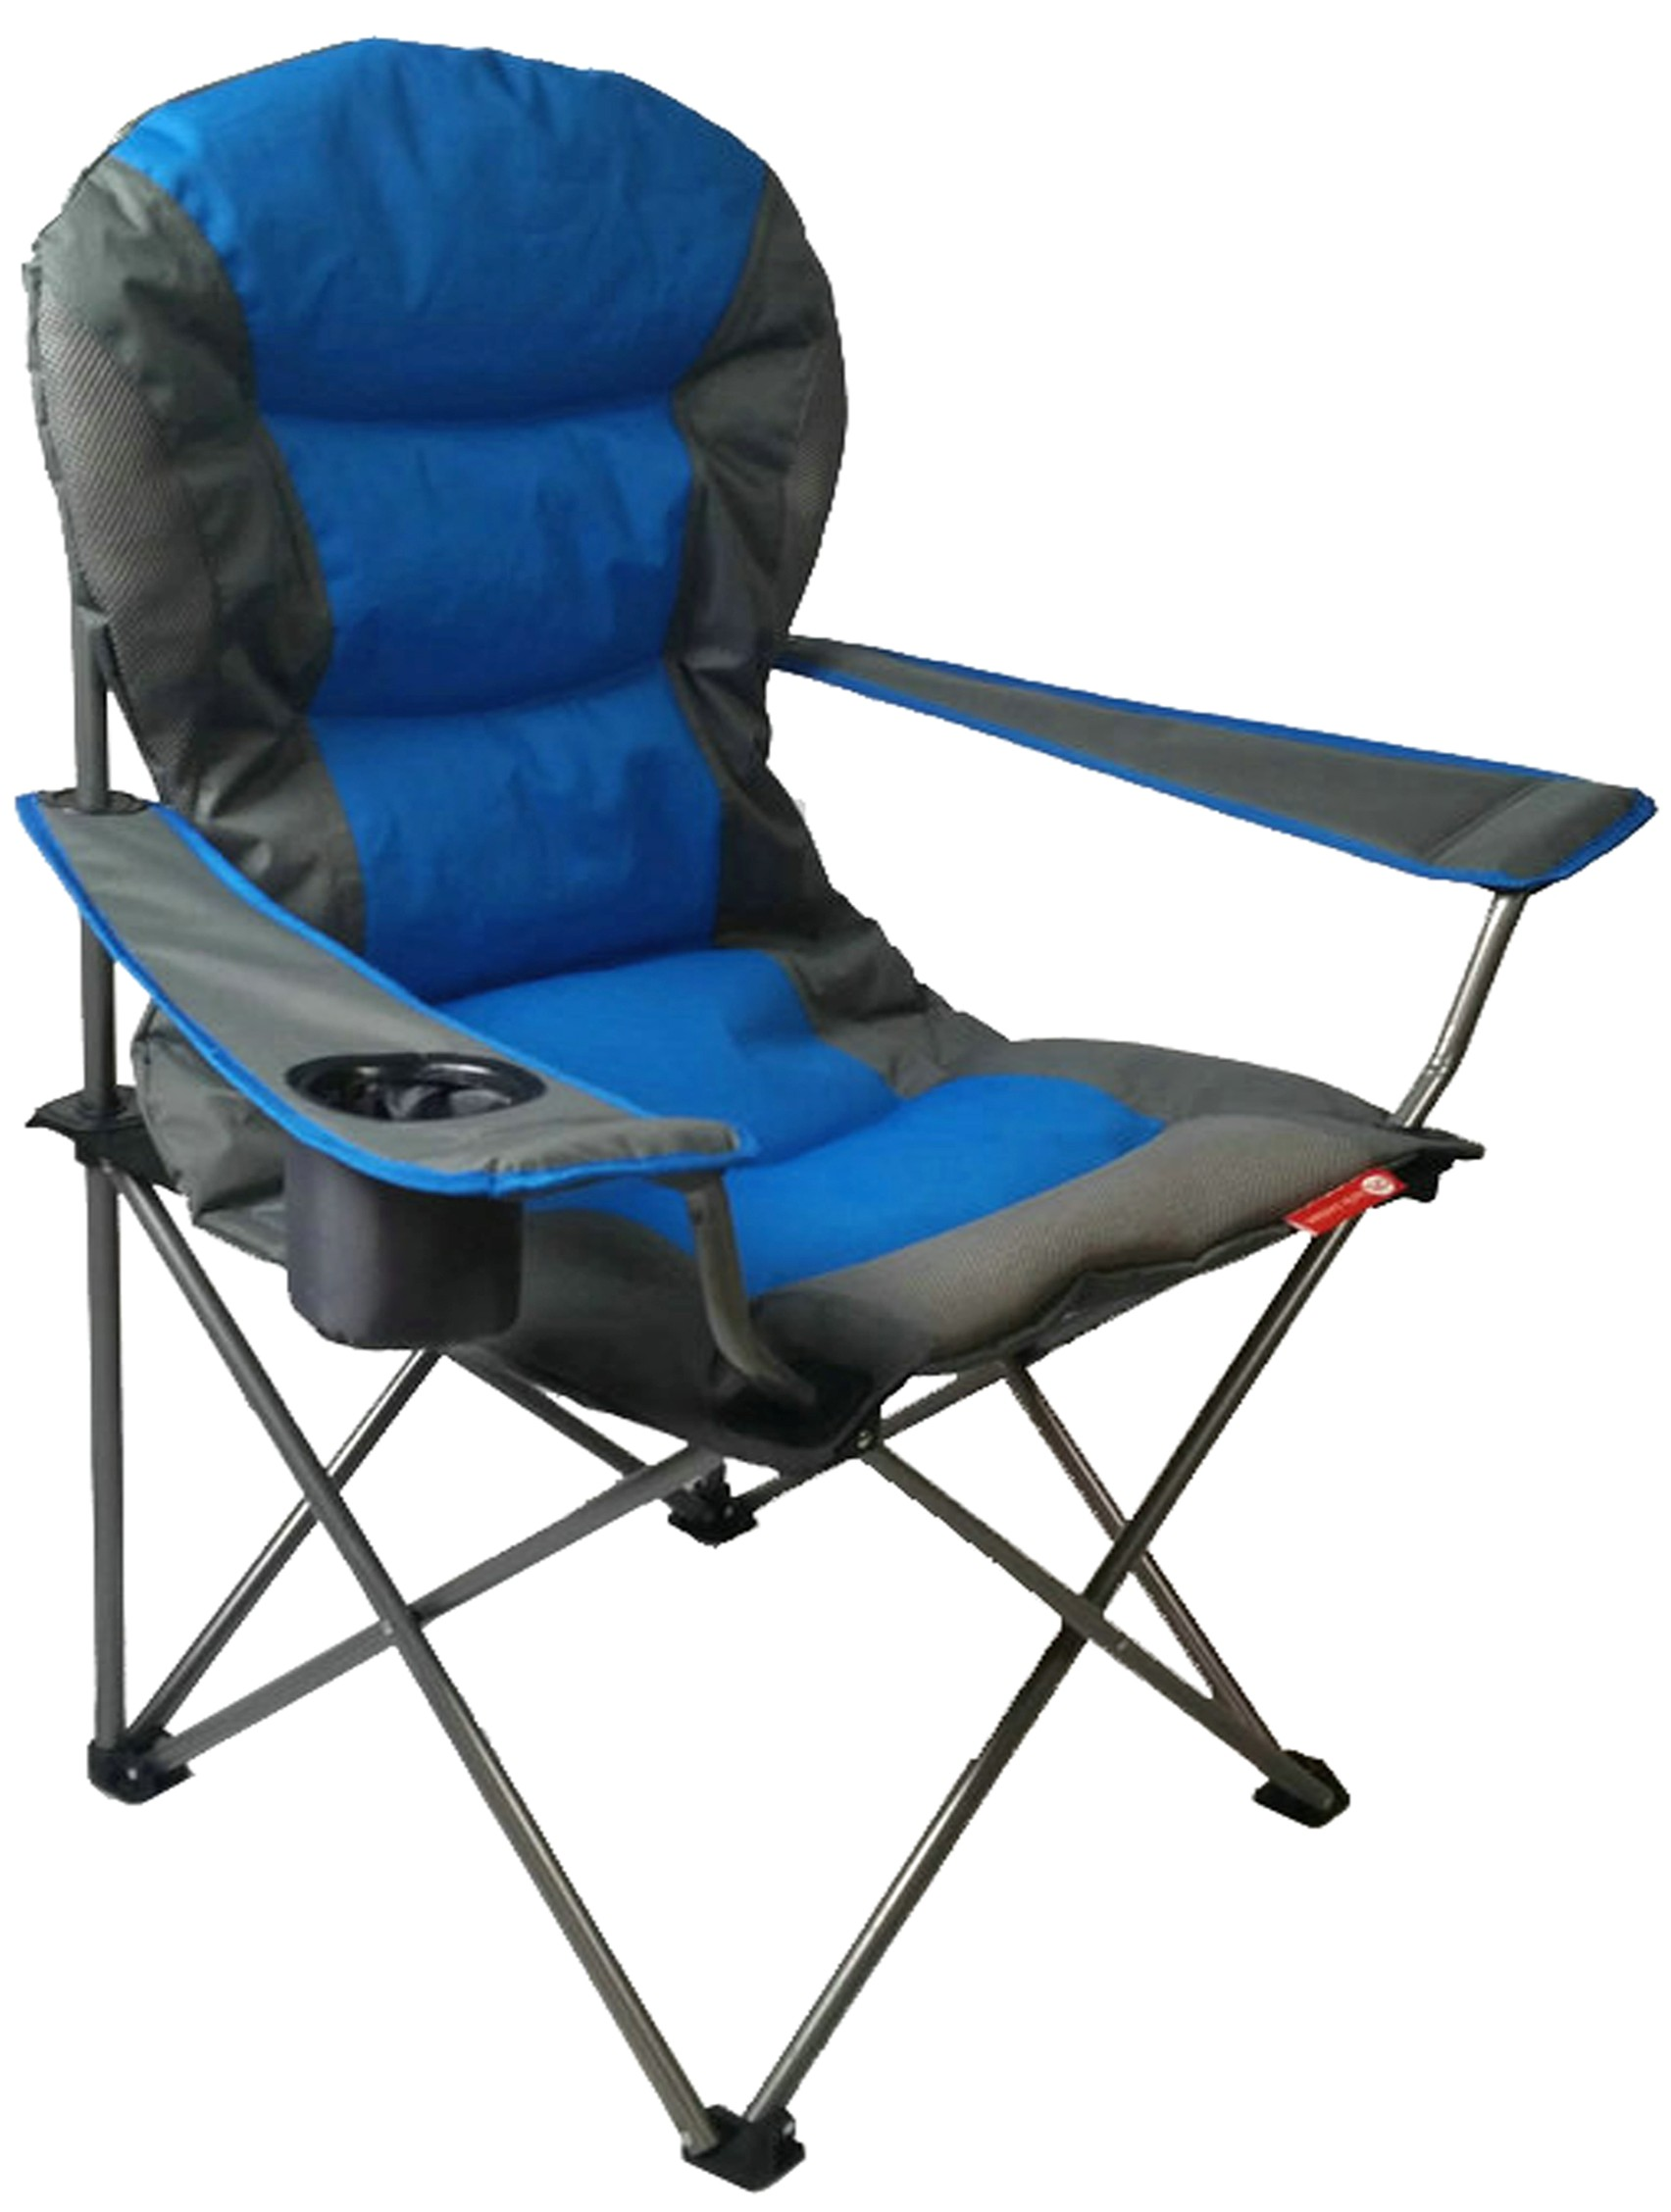 CPL Tahiti pact Folding Padded Camping Chair with Cup Holder